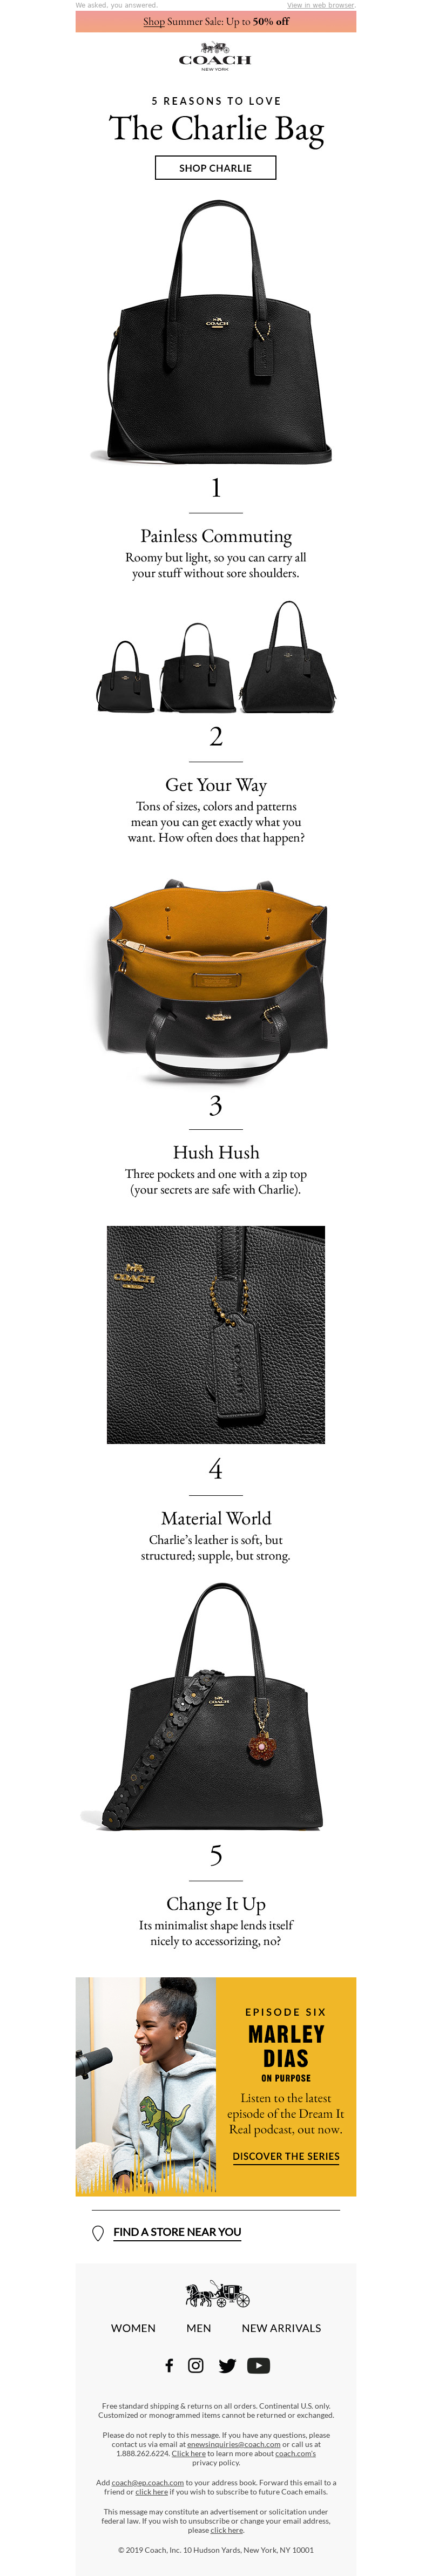 Product promotional email example from Coach